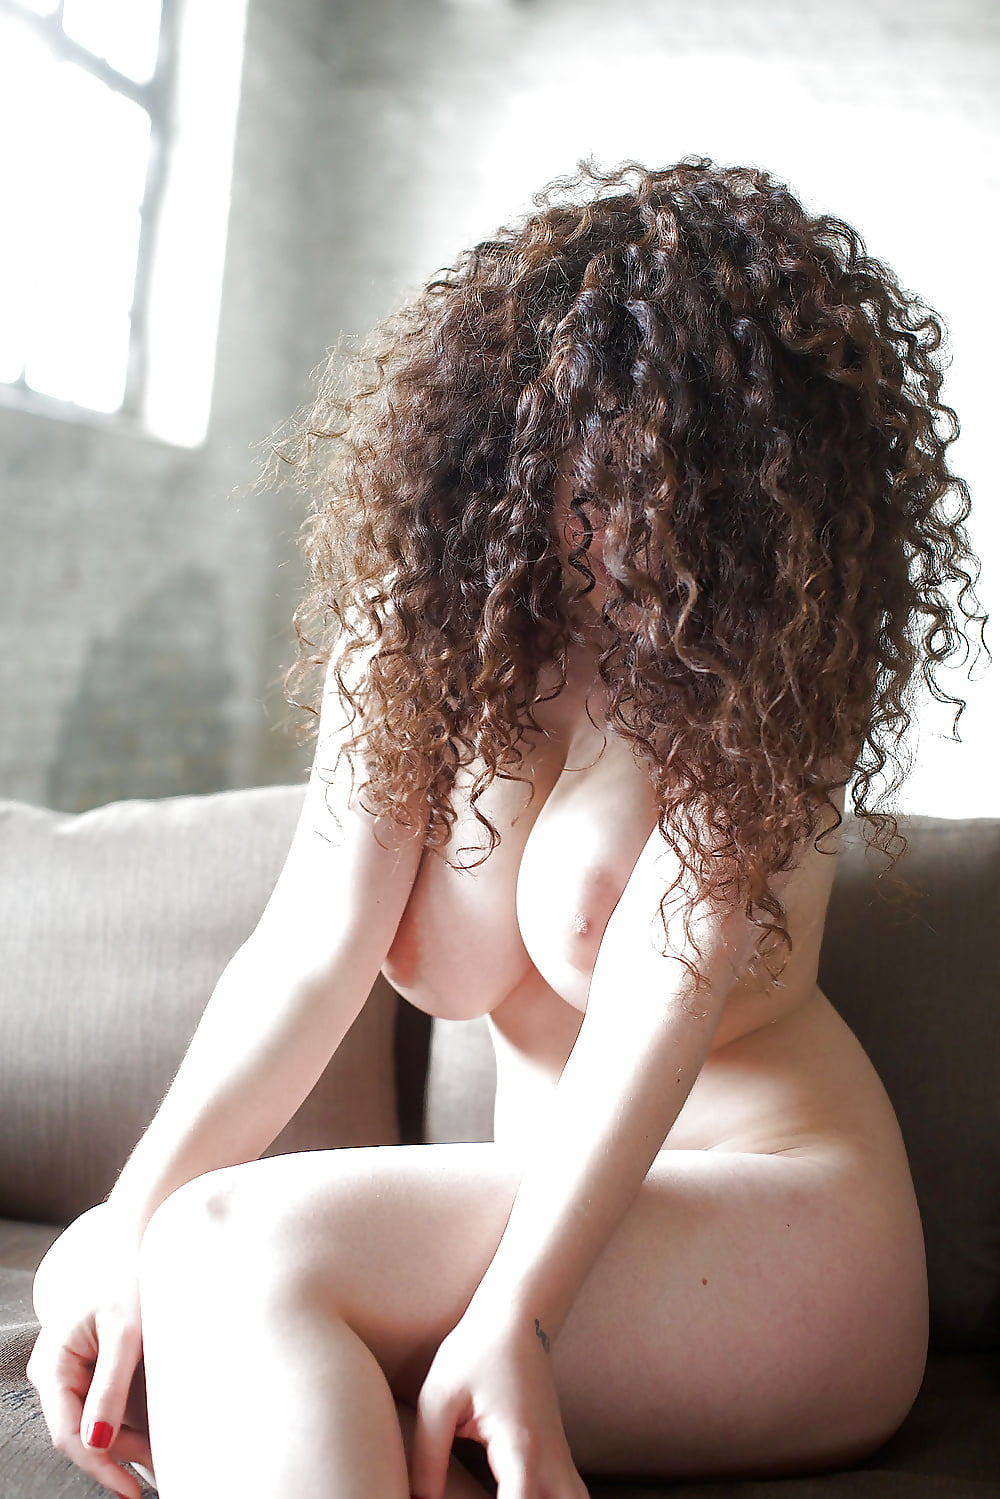 Sex curly haired girls naked free videos